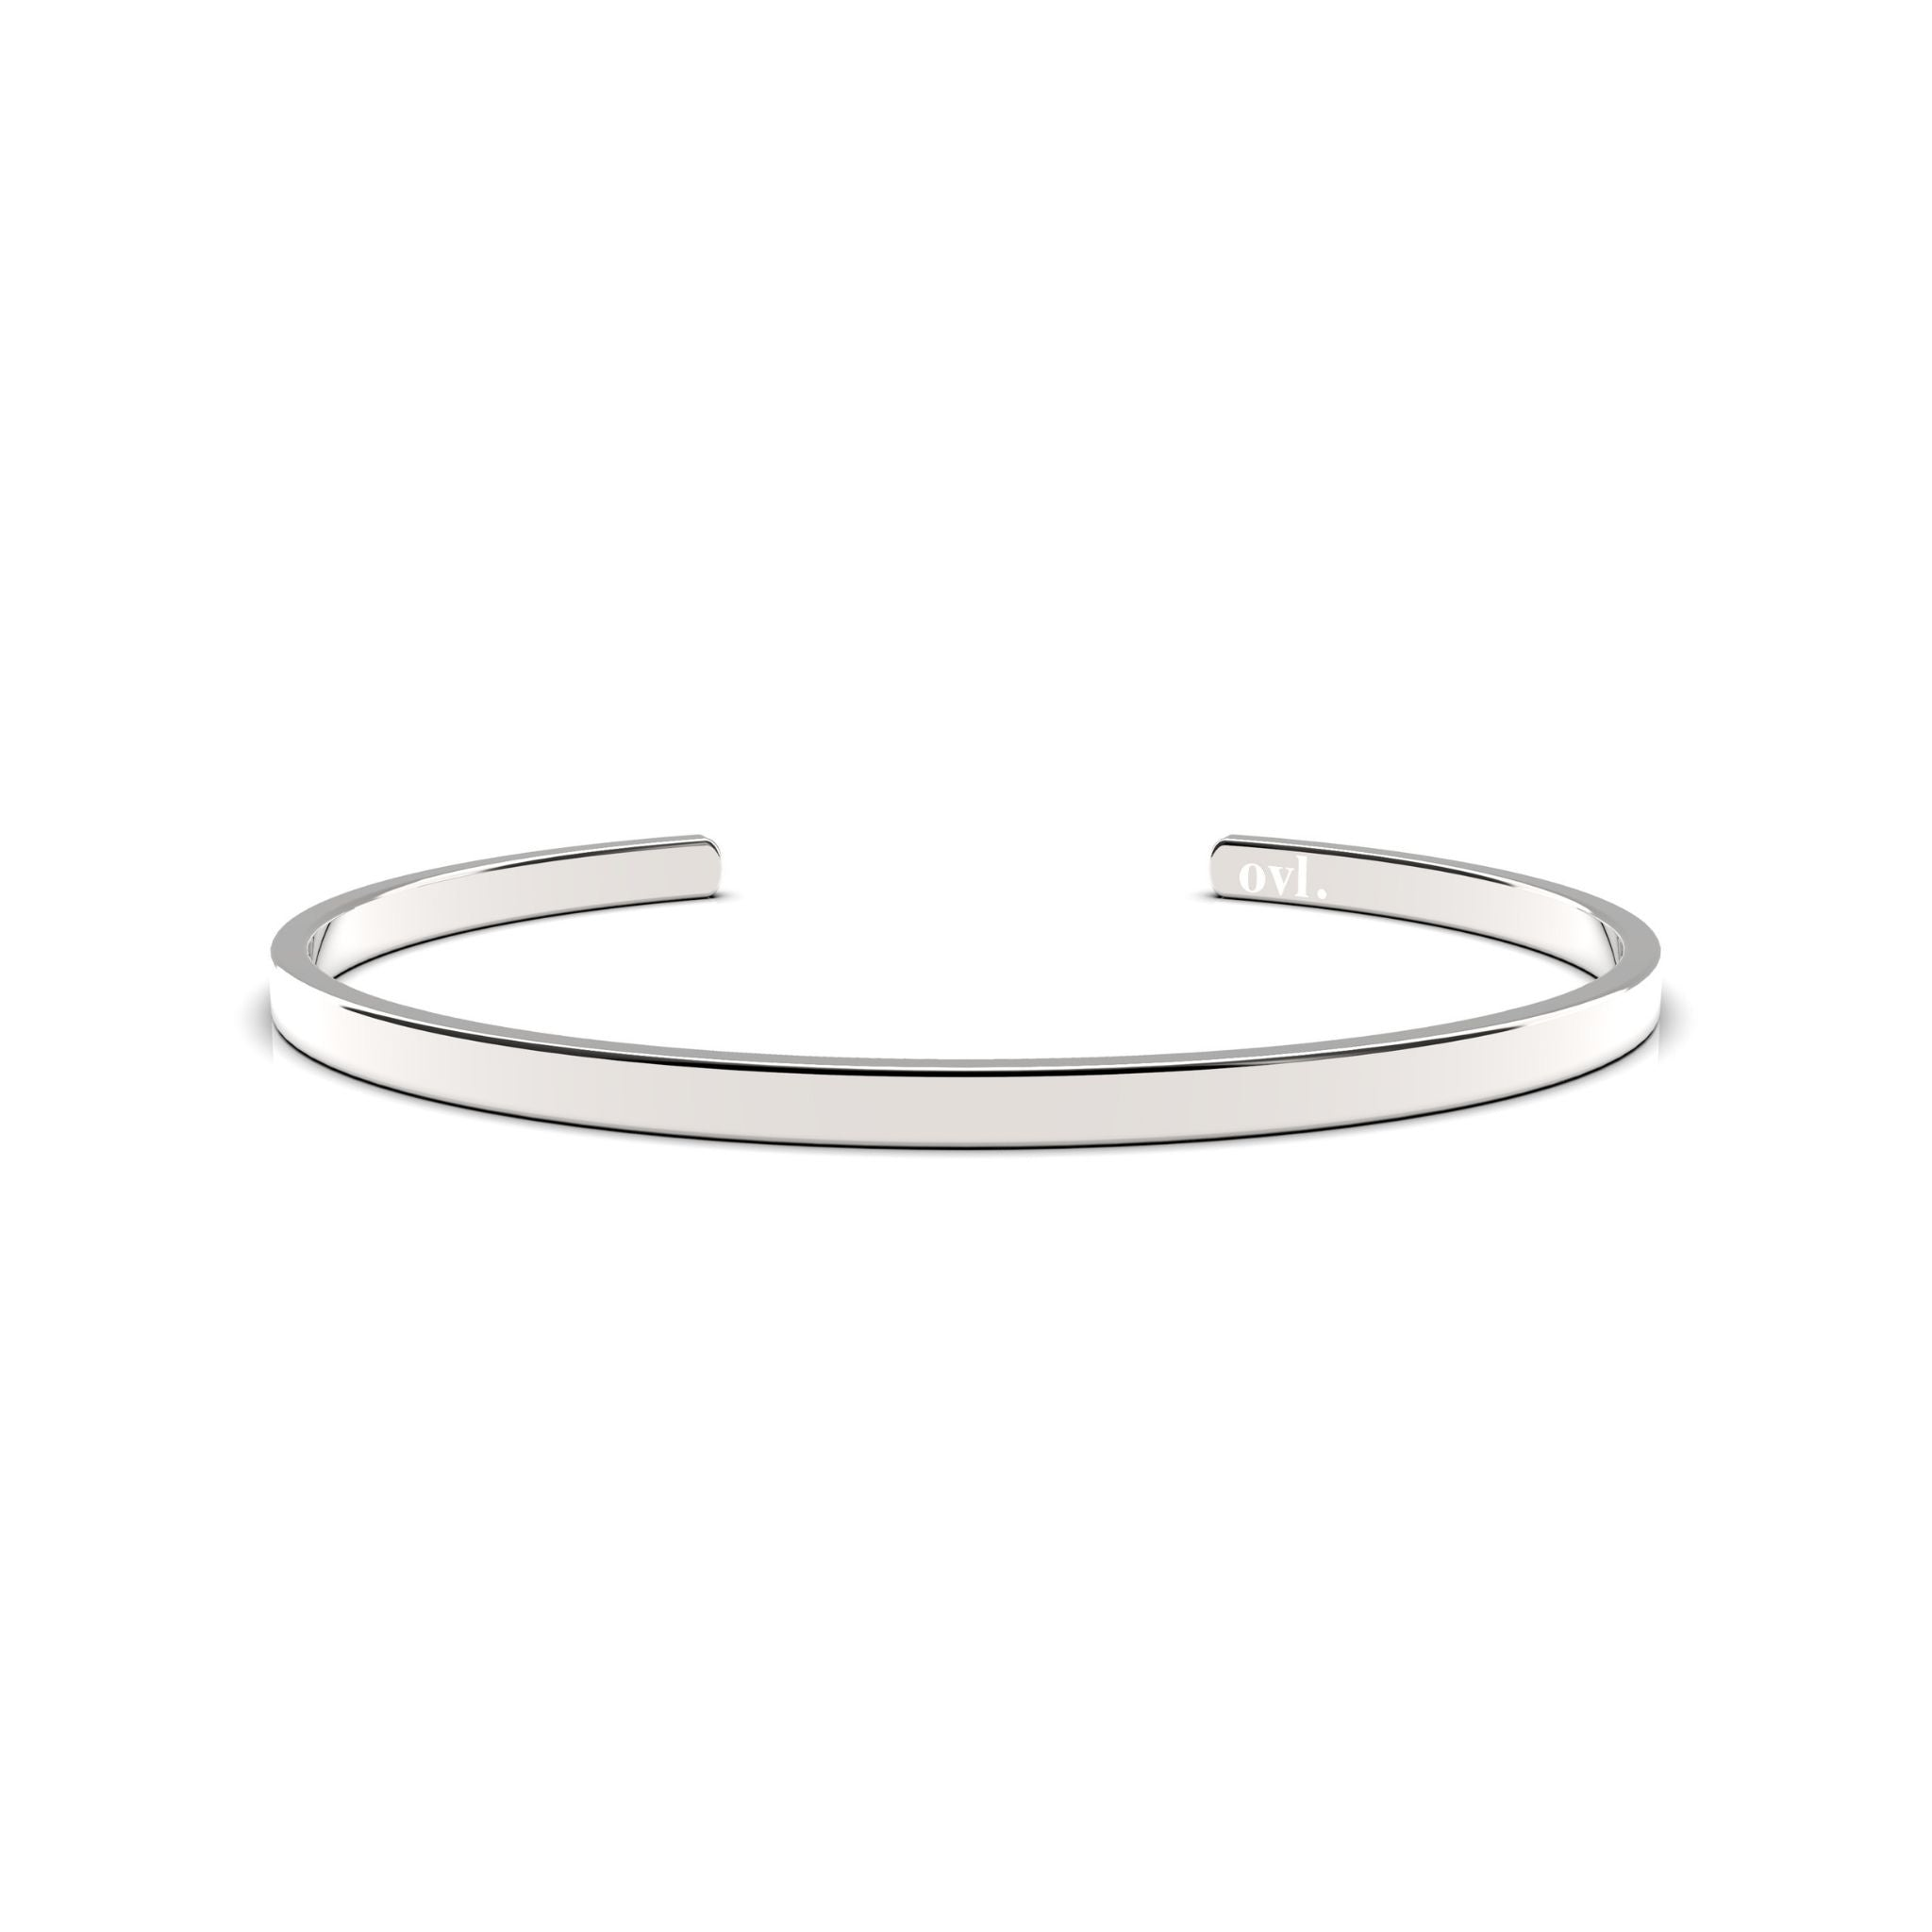 You've got this mama cuff bangle